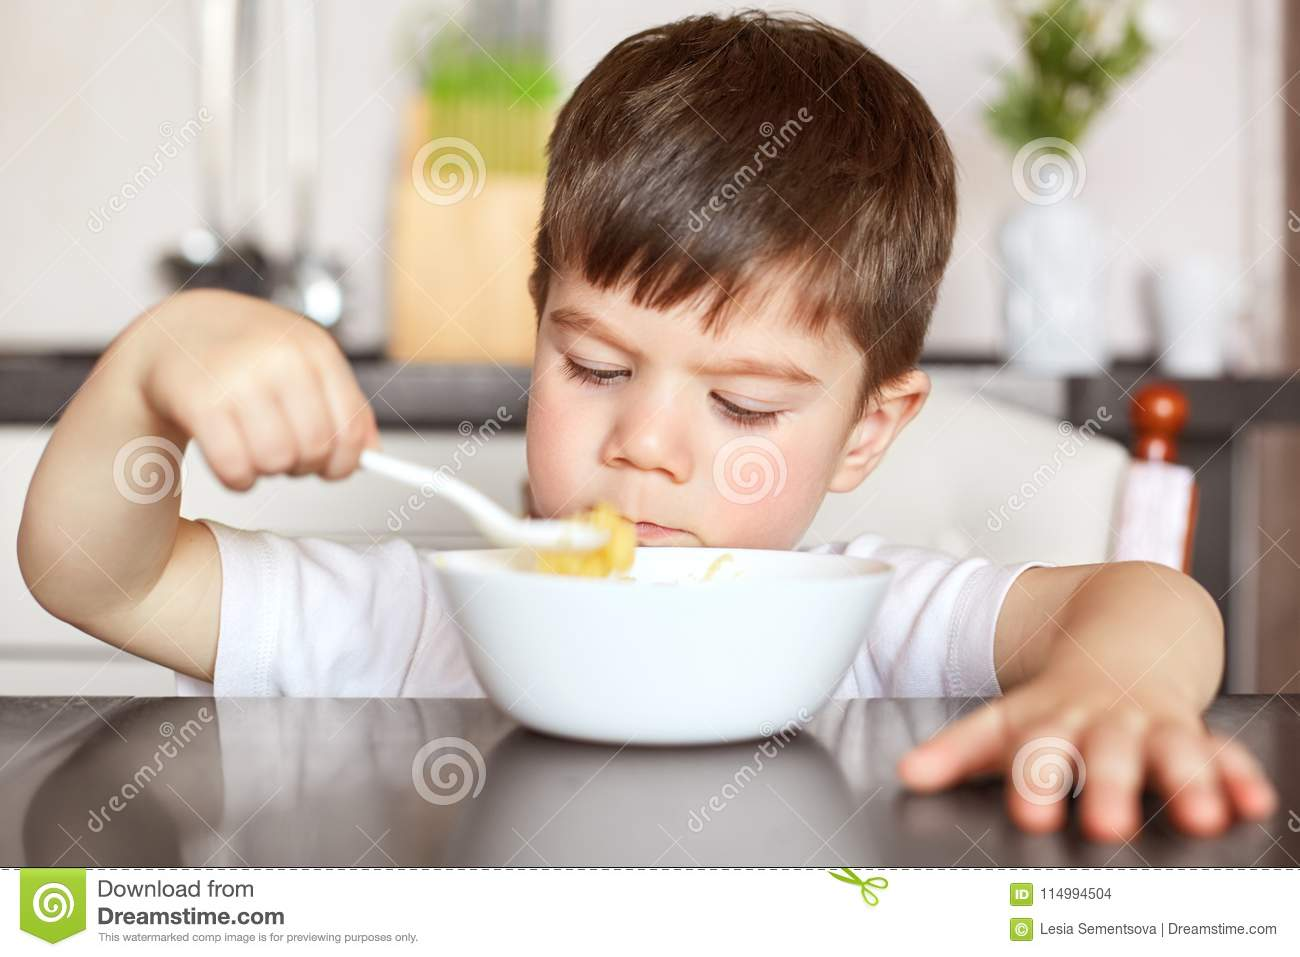 Healthy eating and children concept. Handsome small child eats with great appetite delicious porridge prepared by mother, holds bi